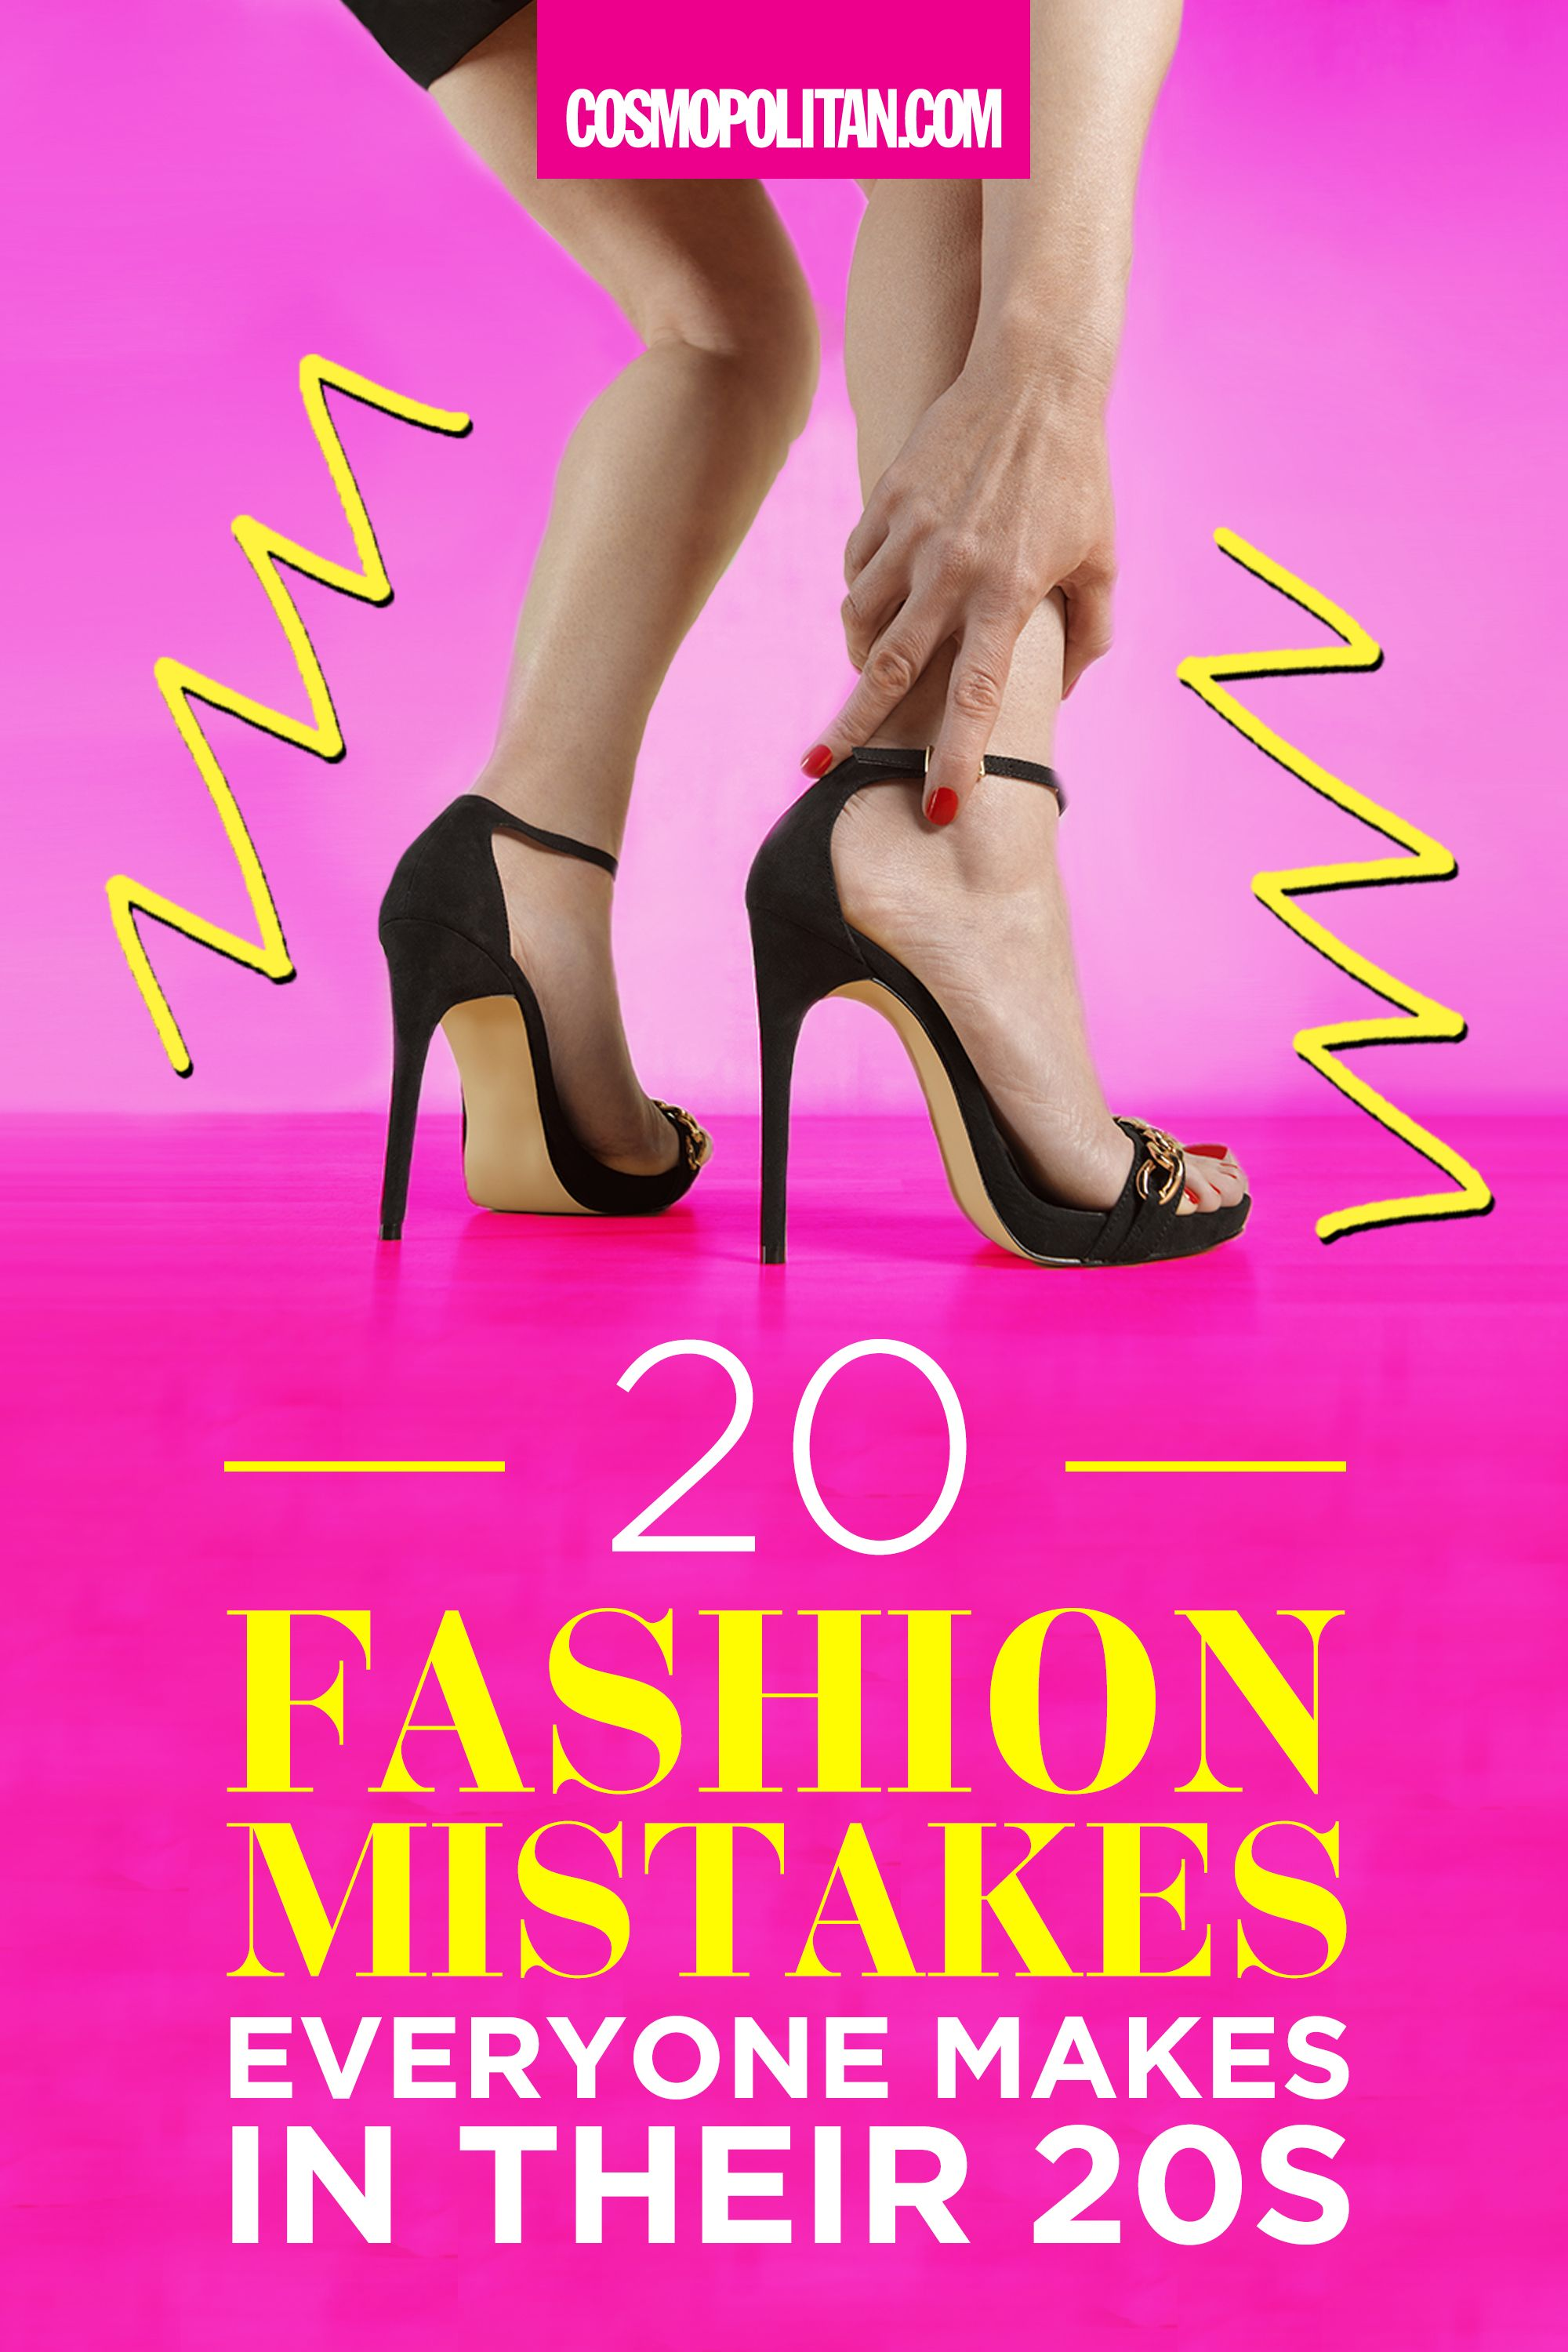 20 Fashion Mistakes Everyone Makes in Their 20s